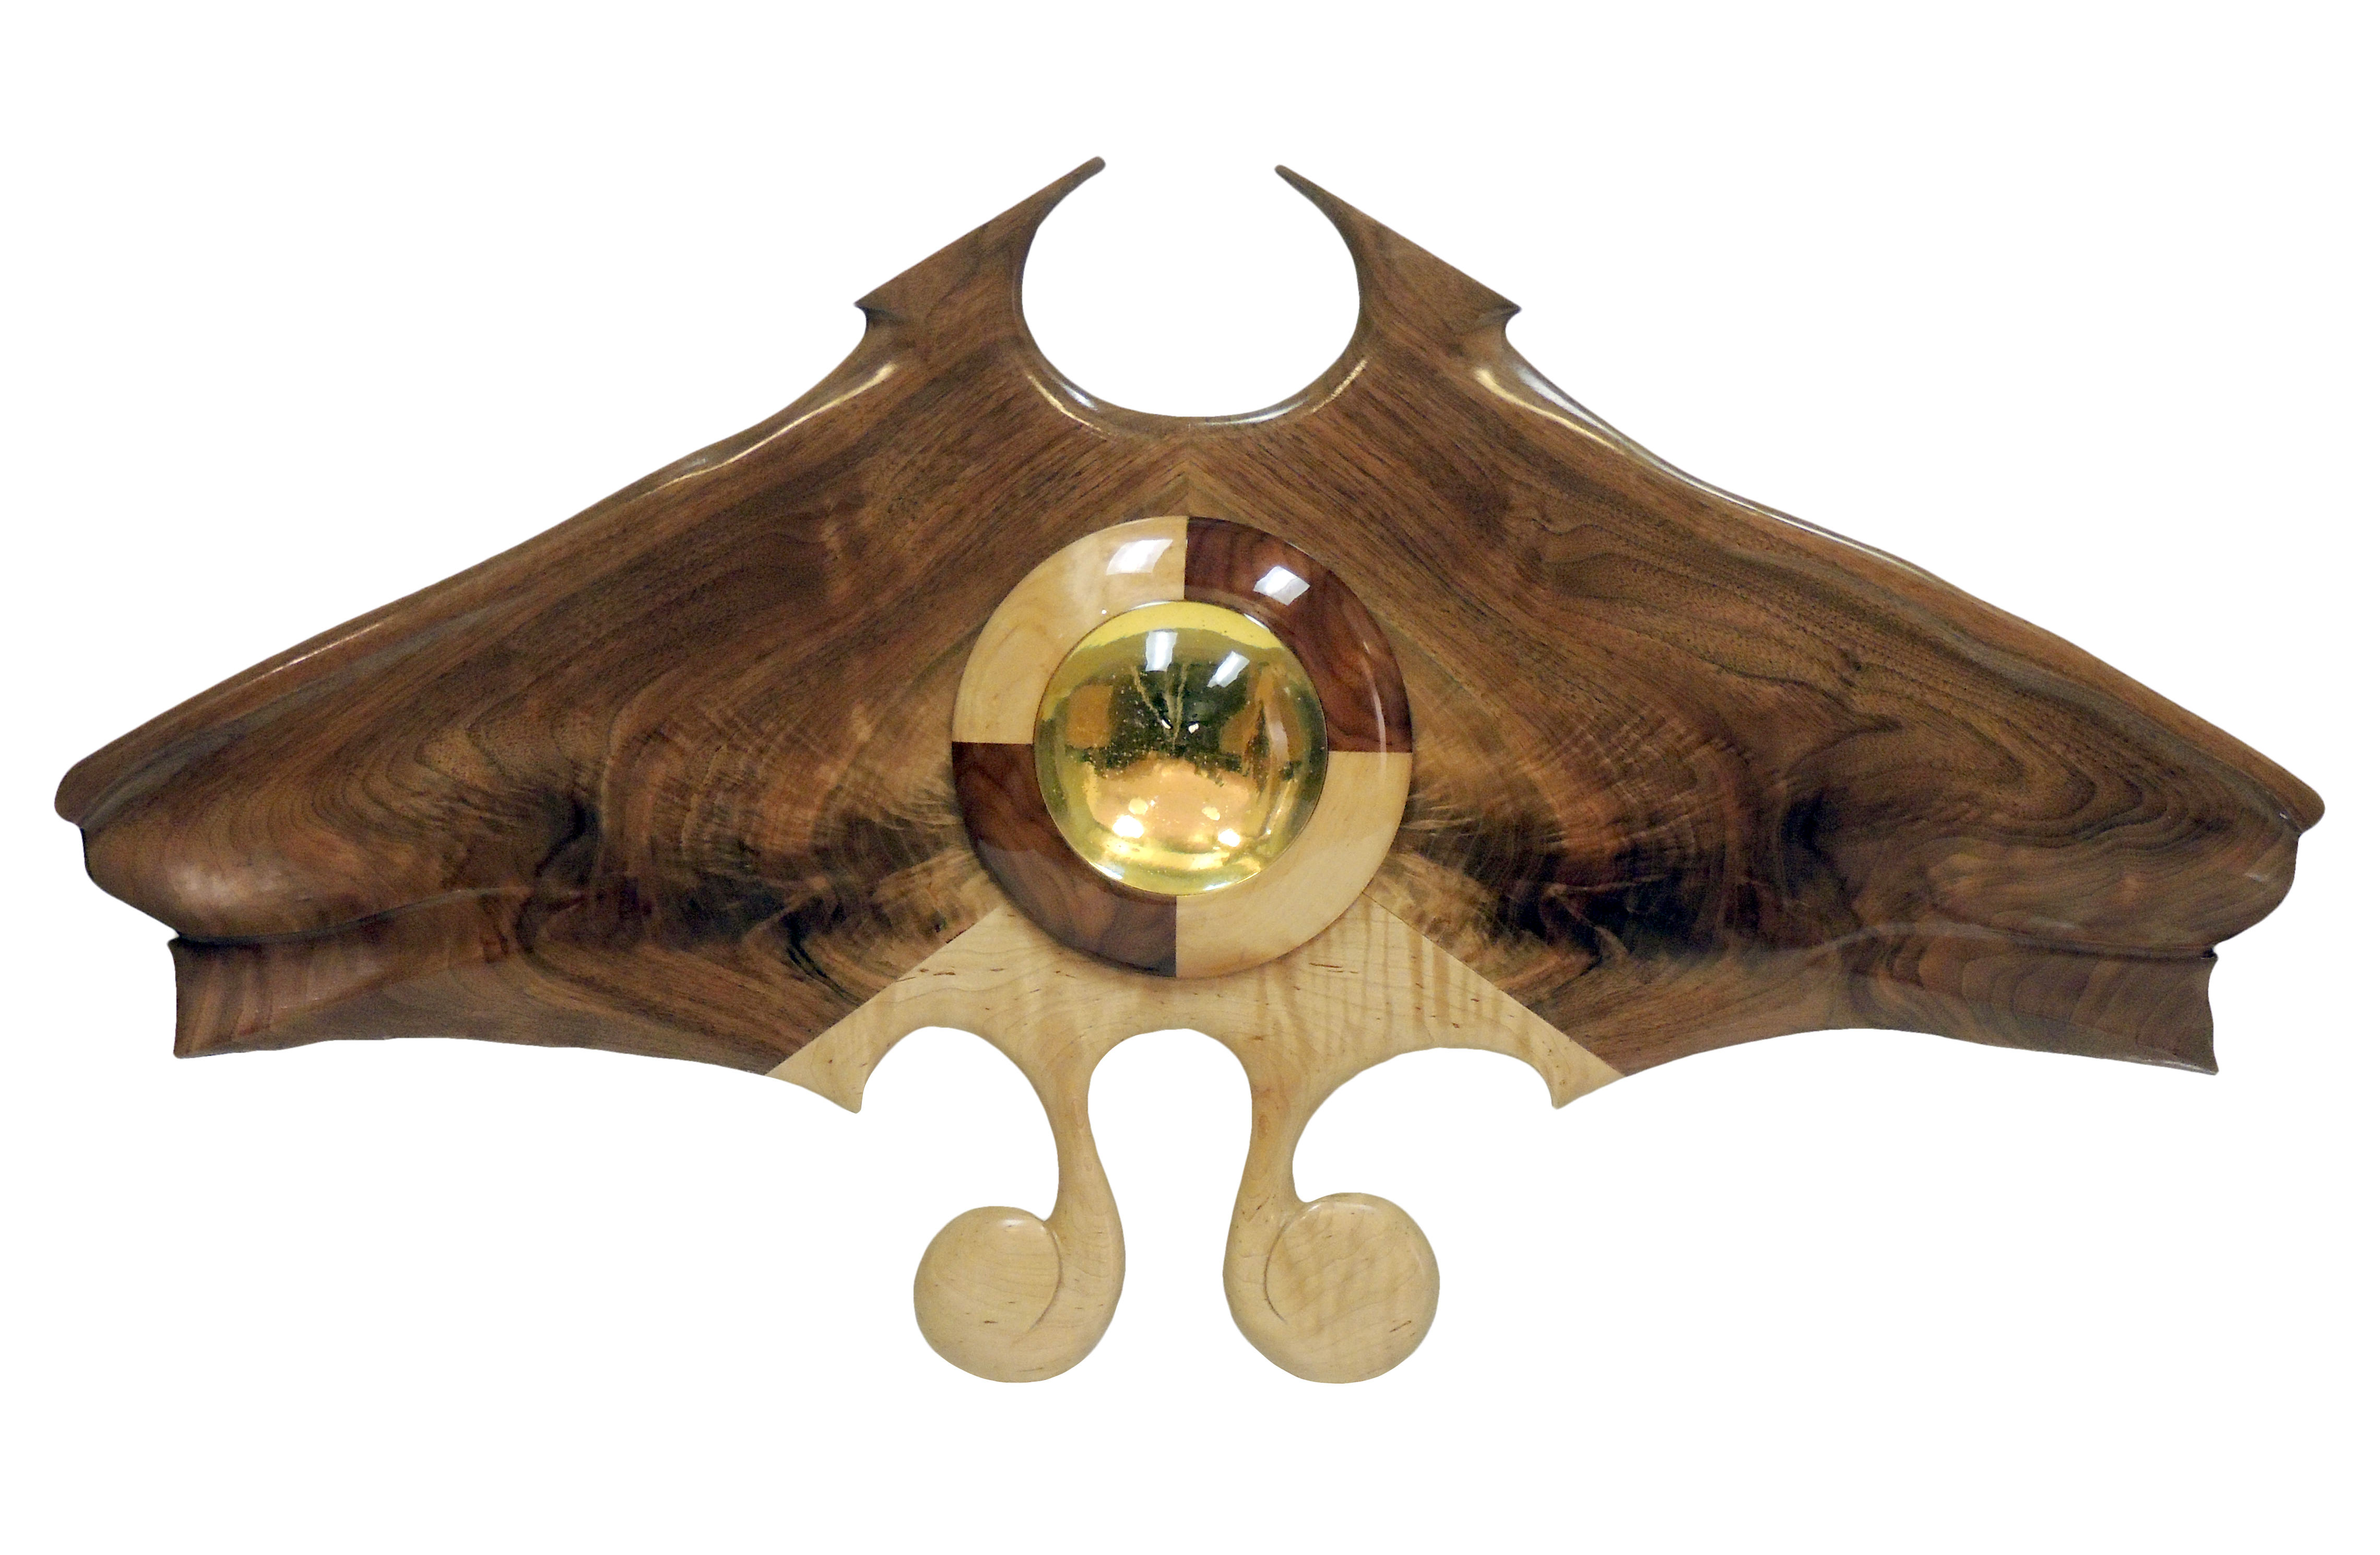 Tom Hawley | S. CHIPPENDALIA | walnut, maple, clear epoxy resin lens | 19 x 35 x 3"